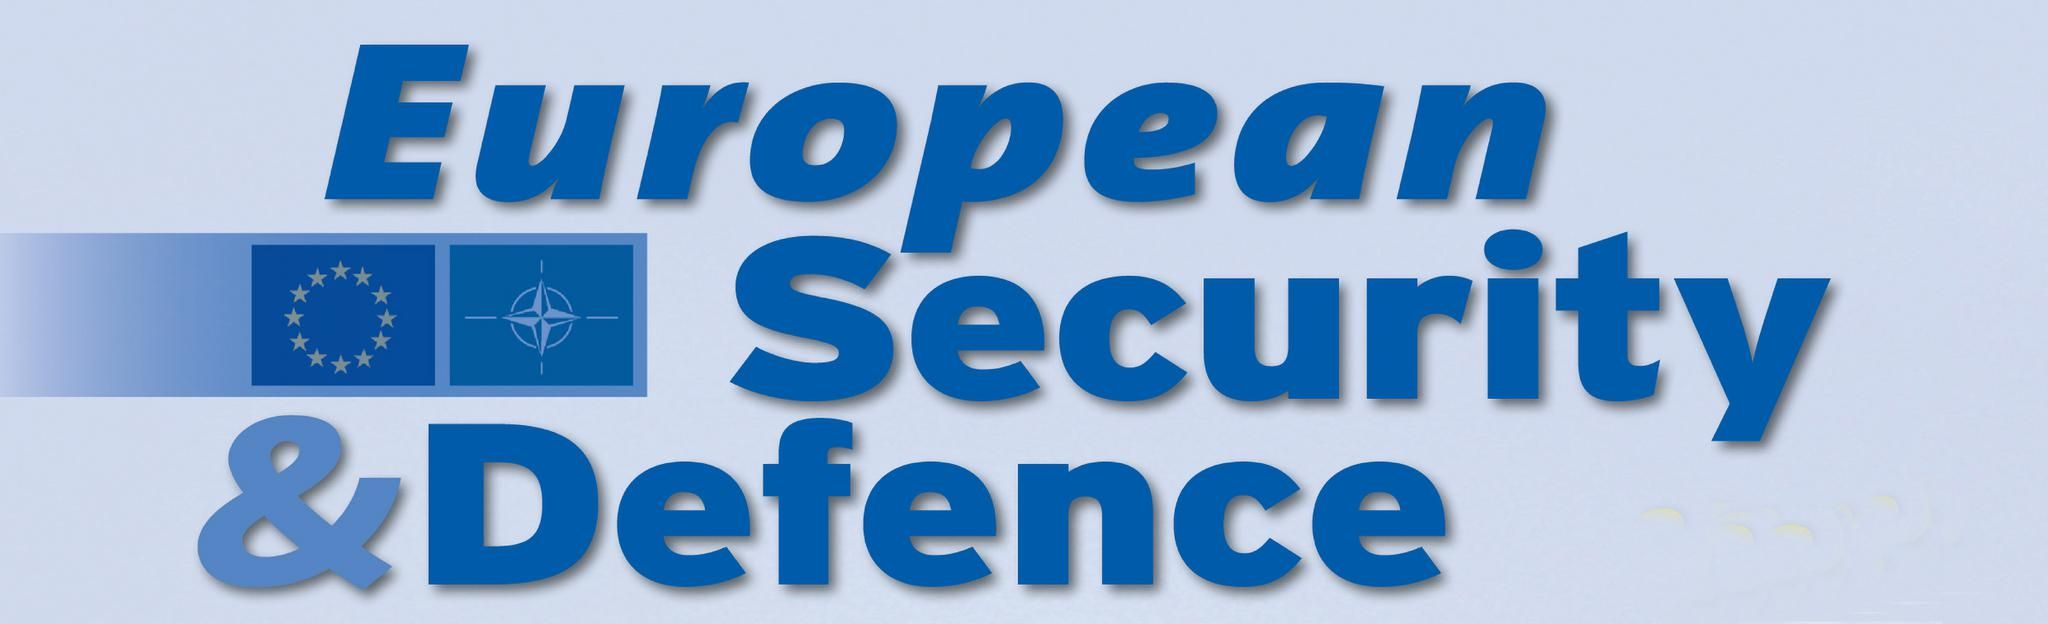 European Security & Defence DSEI Japan media partner